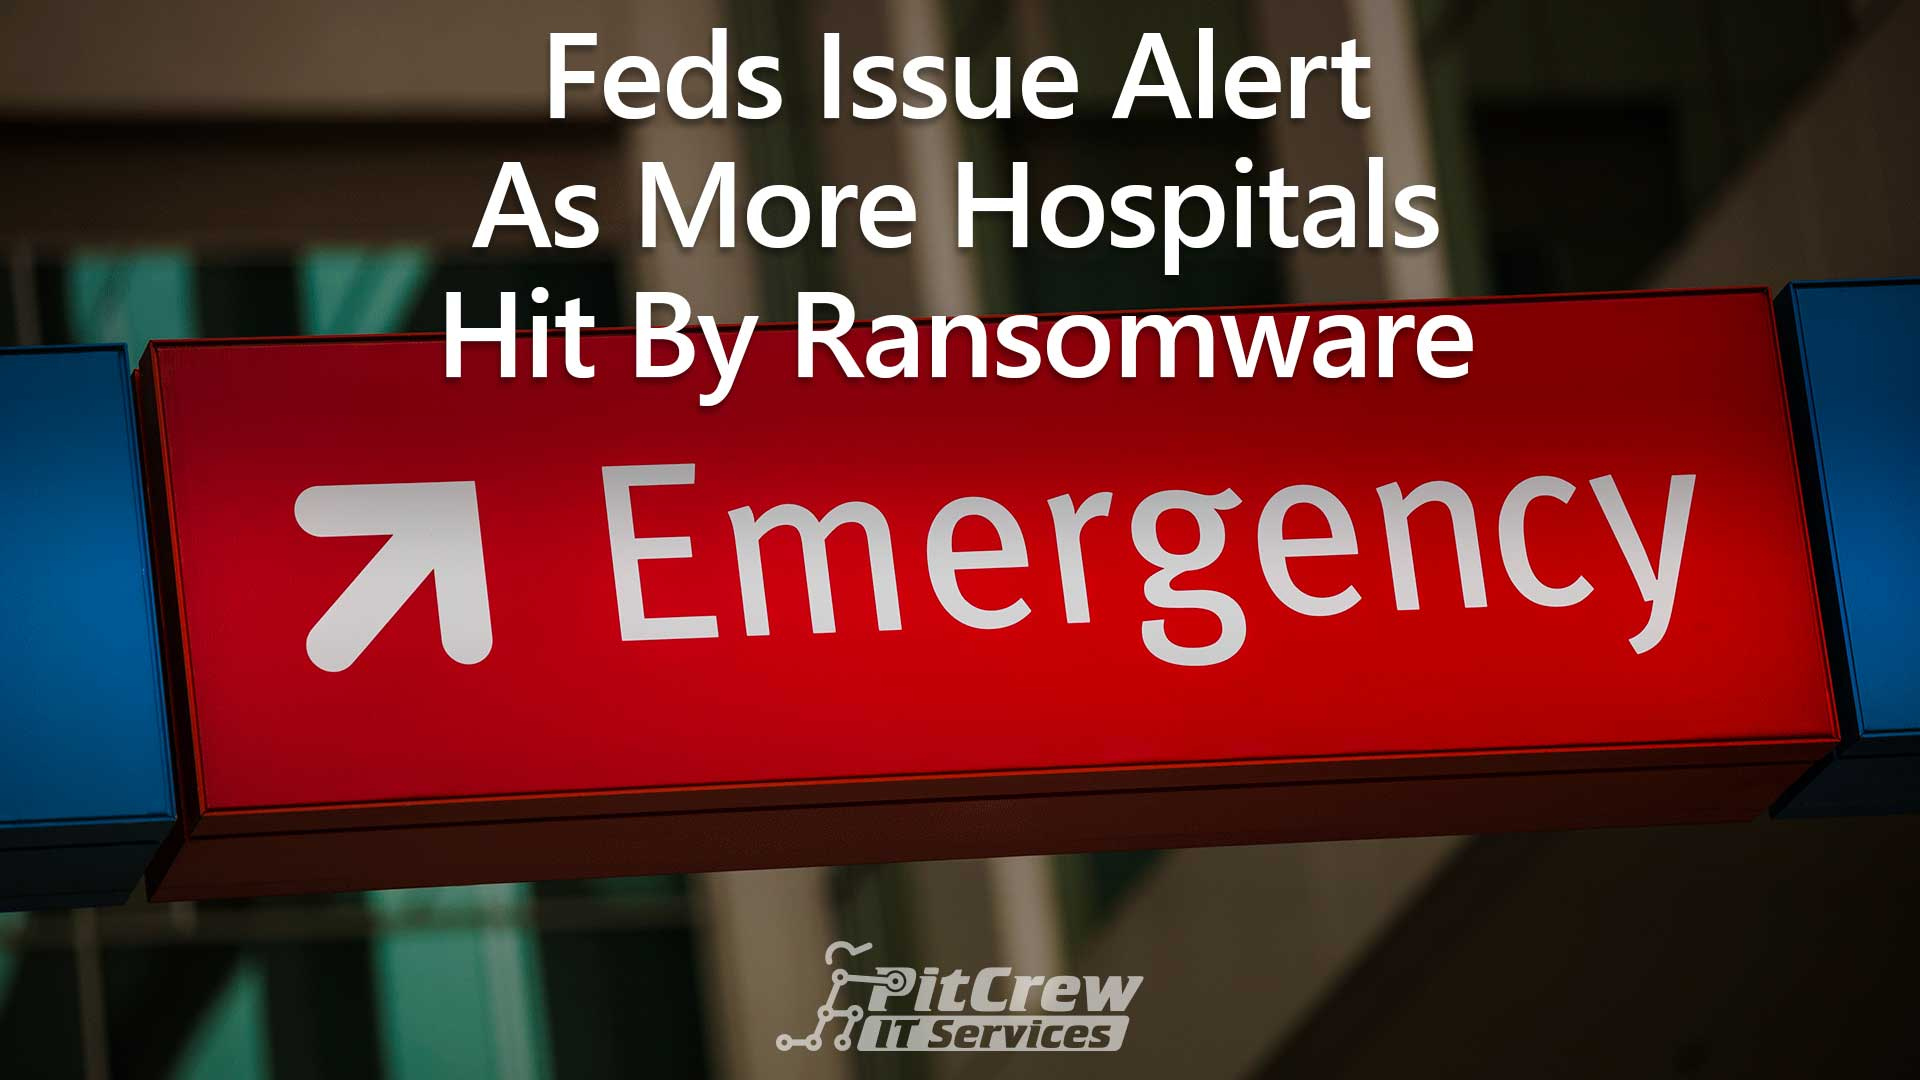 Feds Issue Alert As More Hospitals Hit By Ransomware